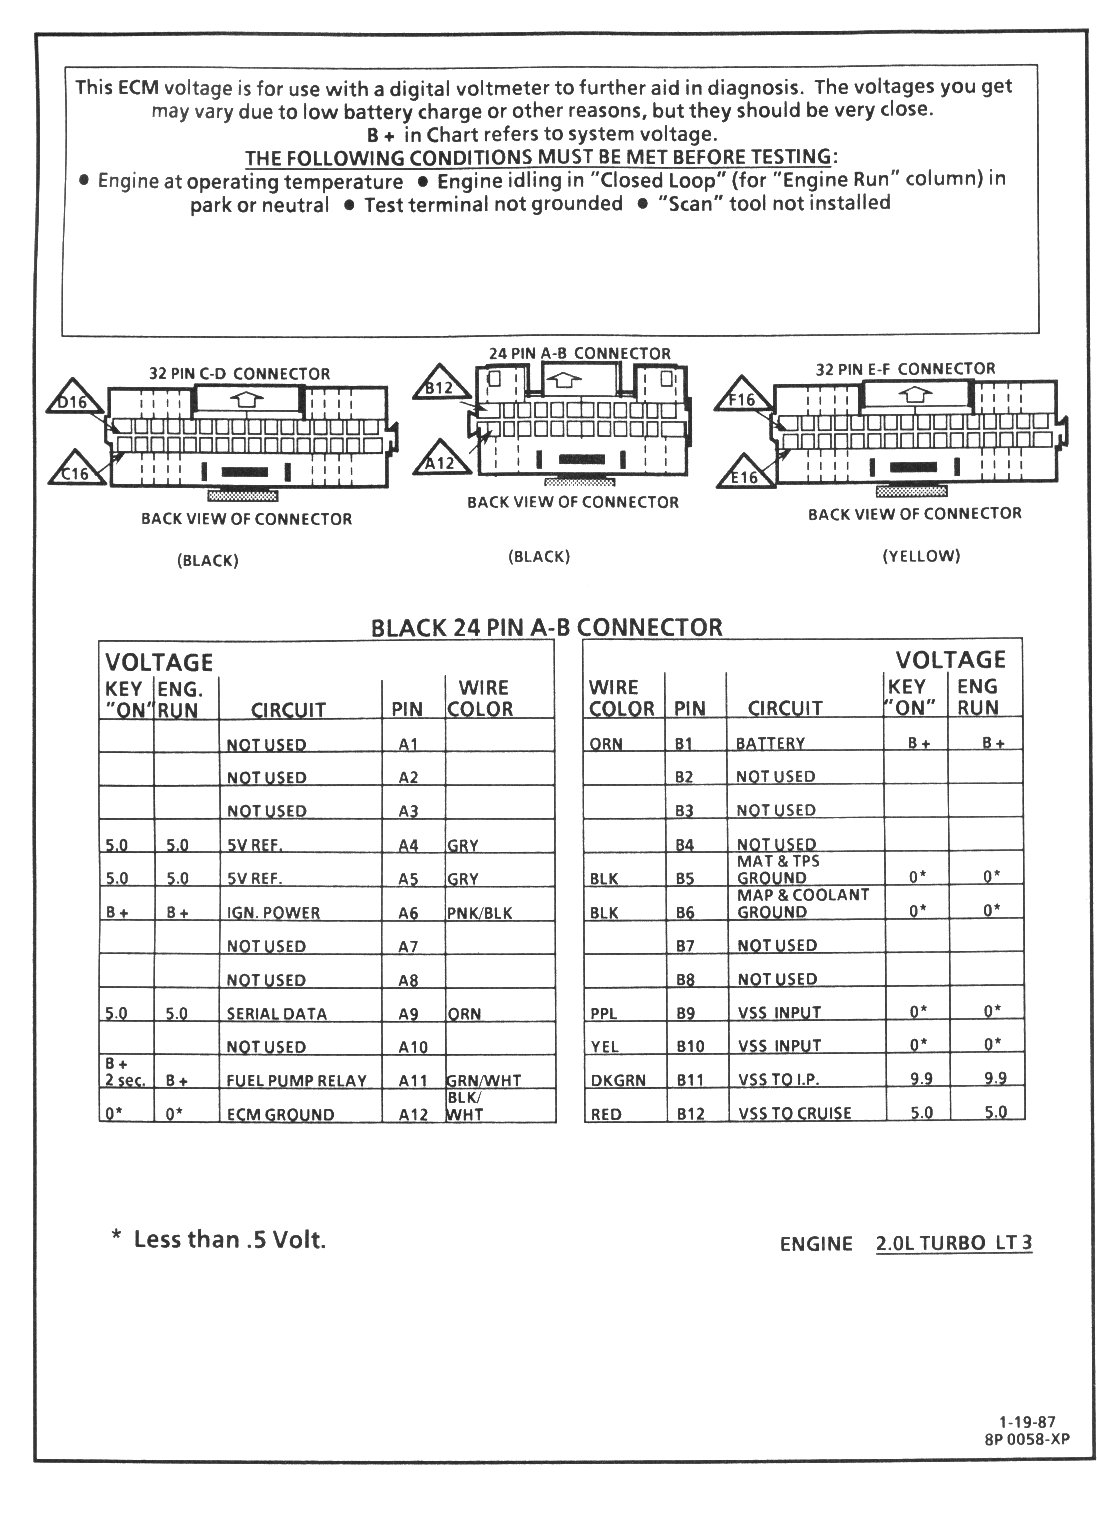 749sunbird5?resize\\d665%2C924 detroit series 60 ecm wiring diagram efcaviation com ddec ii wiring diagram at bakdesigns.co